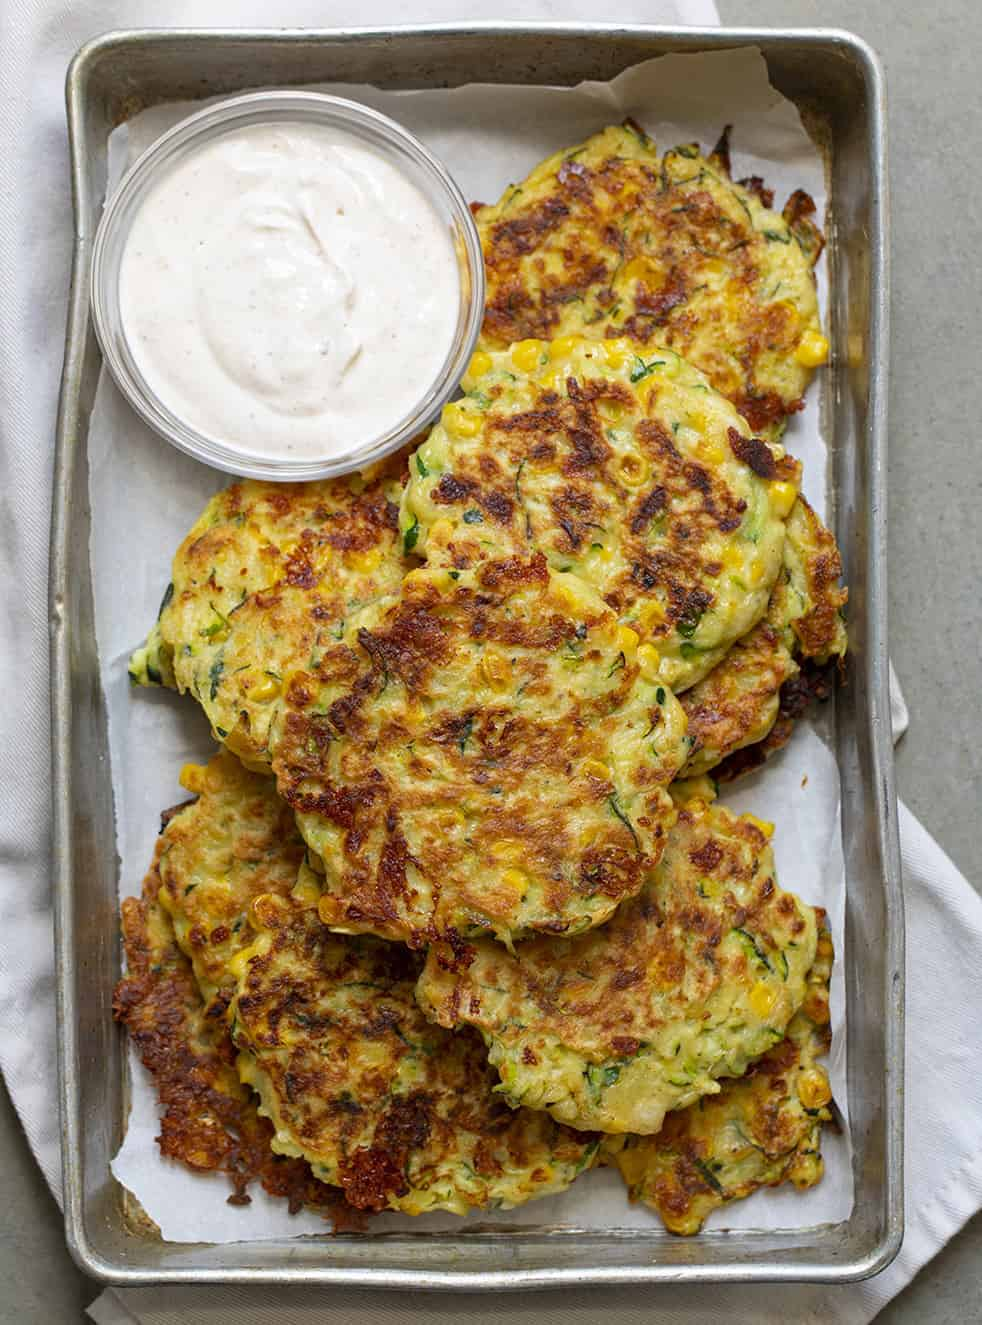 Overhead Image of Zucchini Fritters in a Pan with Sauce